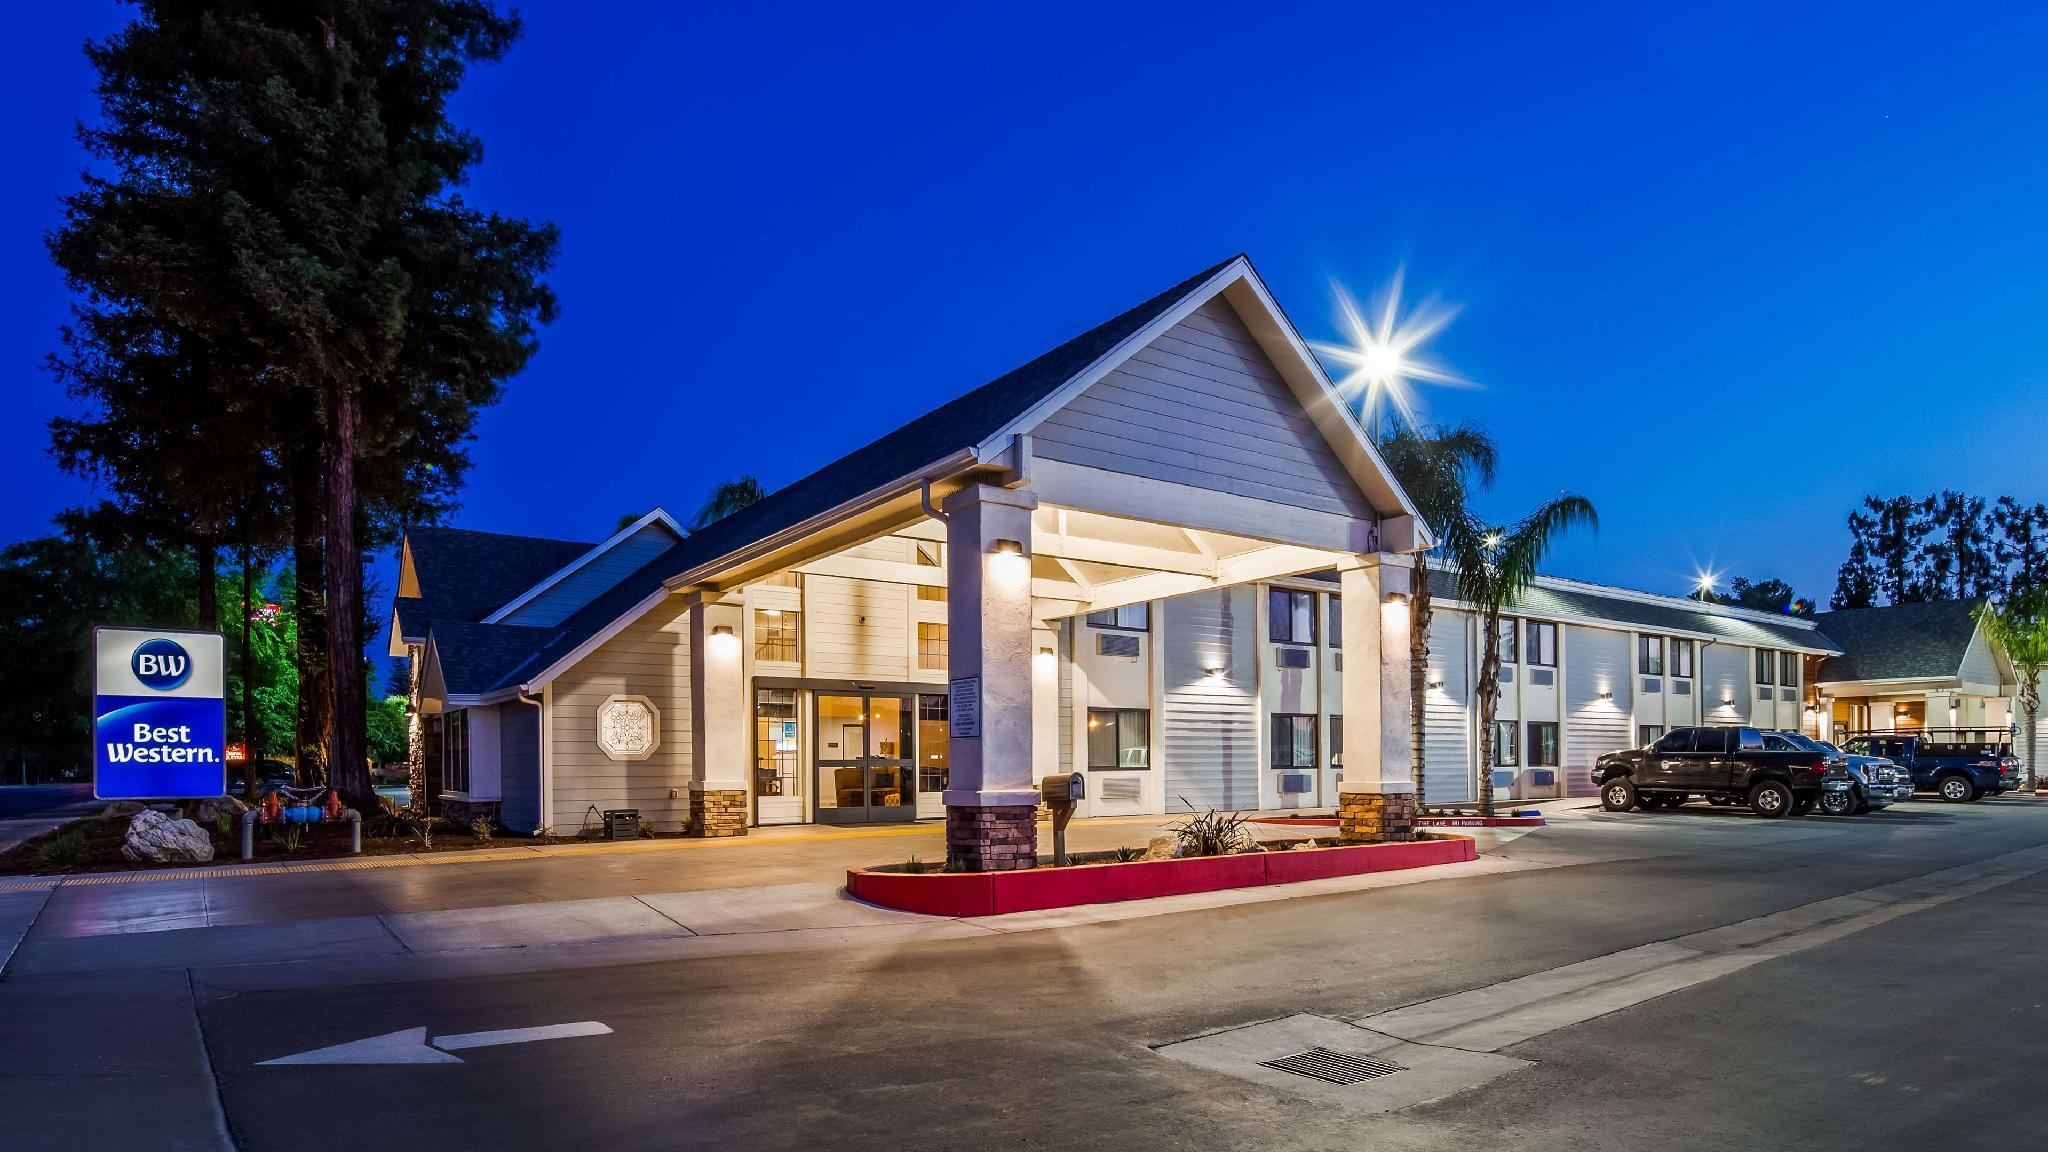 Best Western Town and Country Lodge, Tulare